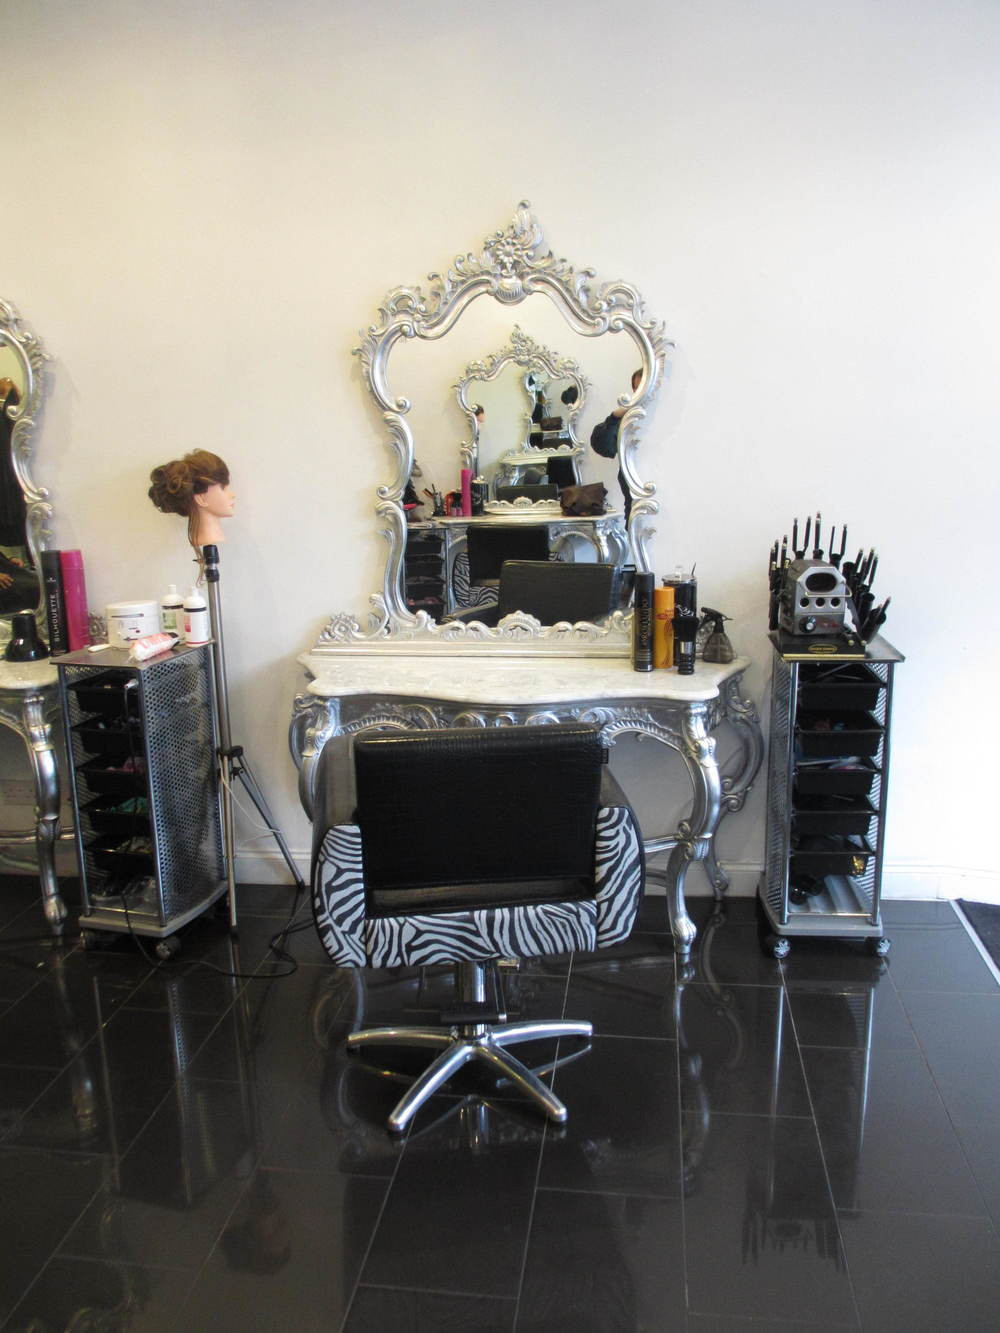 Ahsiek's Beauty Salon In Deptford South London Club